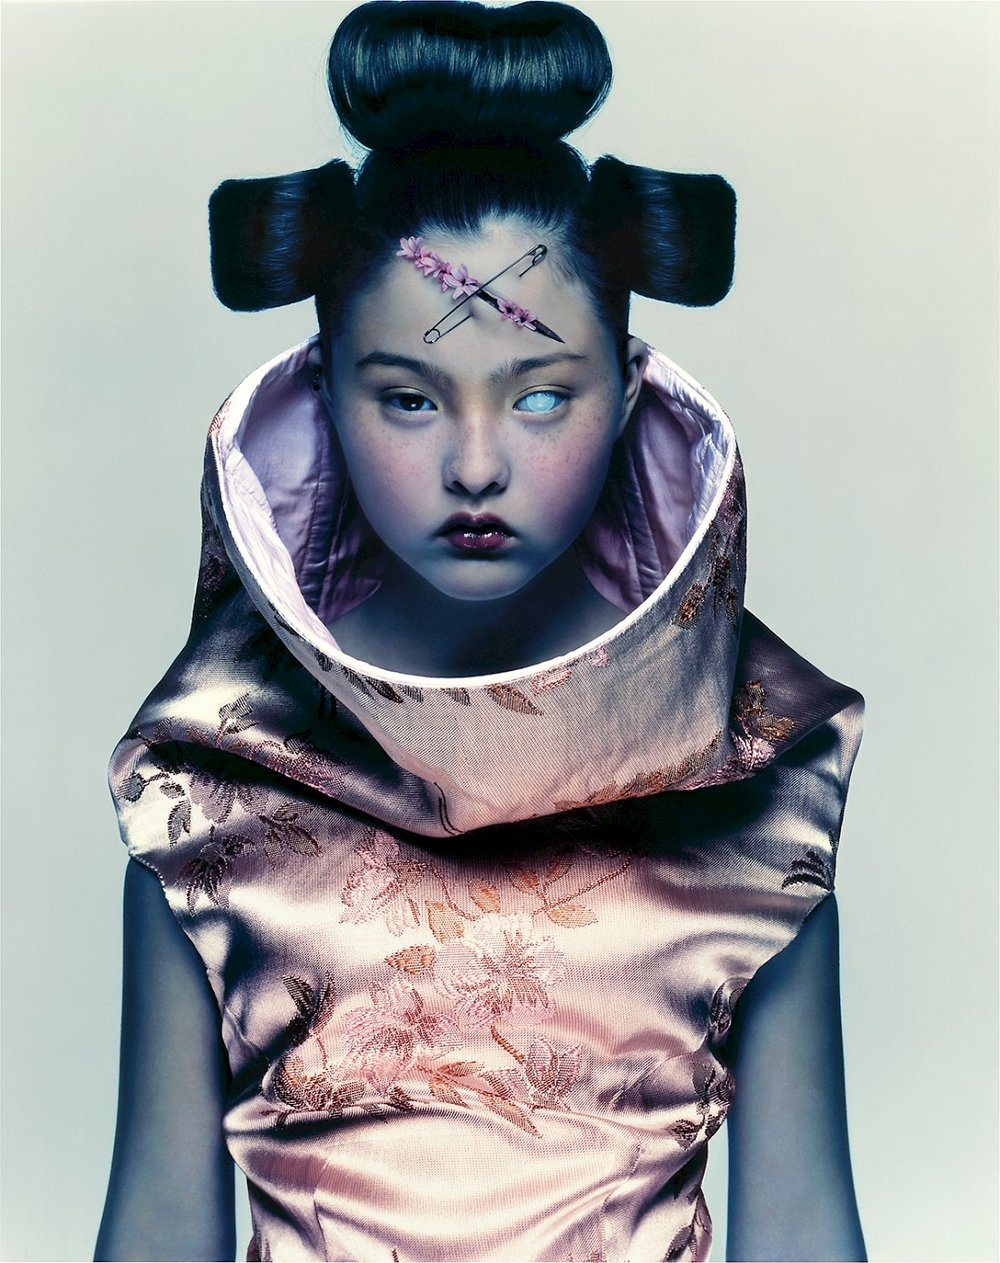 DEVON AOKI: THE VISUAL ARCHIVING OF IDENTITY